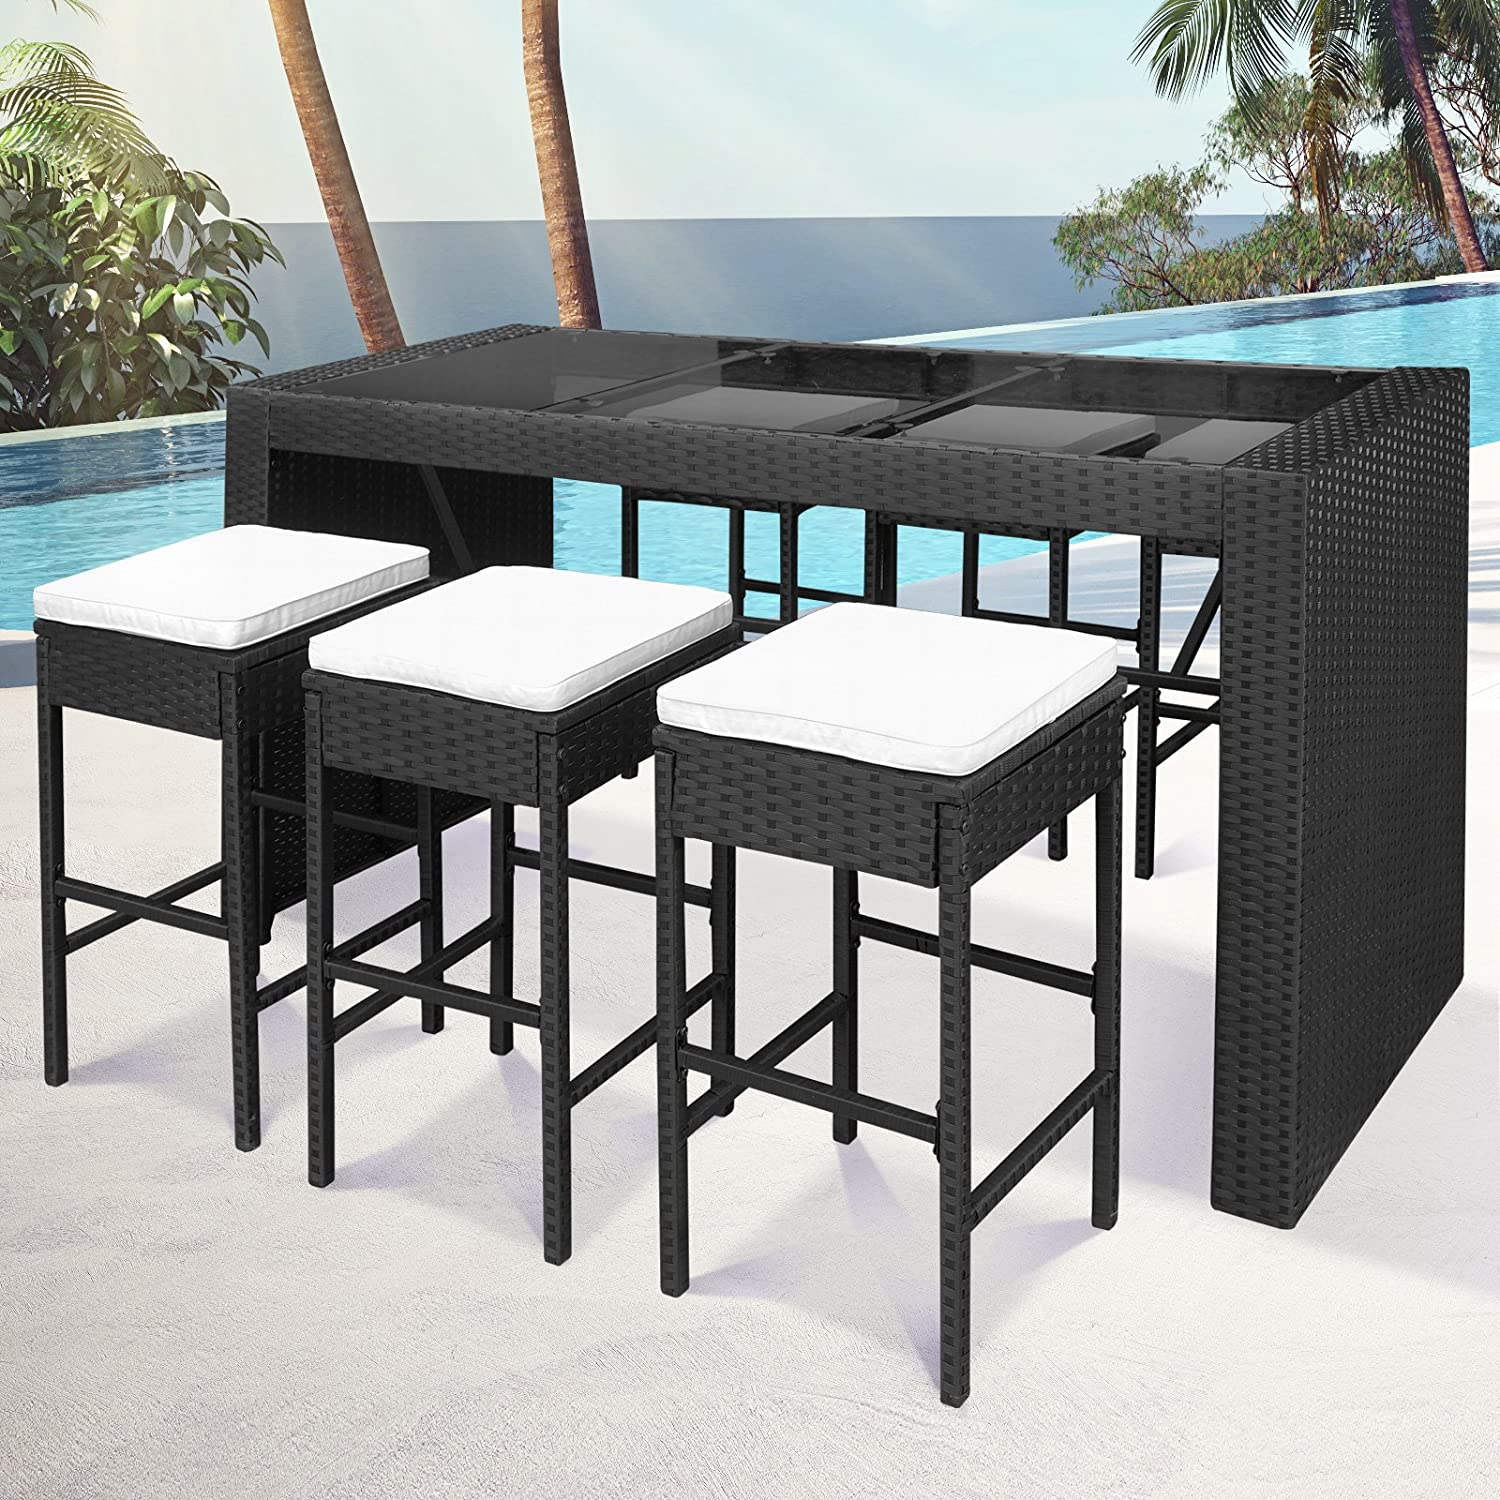 miadomodo polyrattan bar sitzgarnitur sitzgruppe. Black Bedroom Furniture Sets. Home Design Ideas